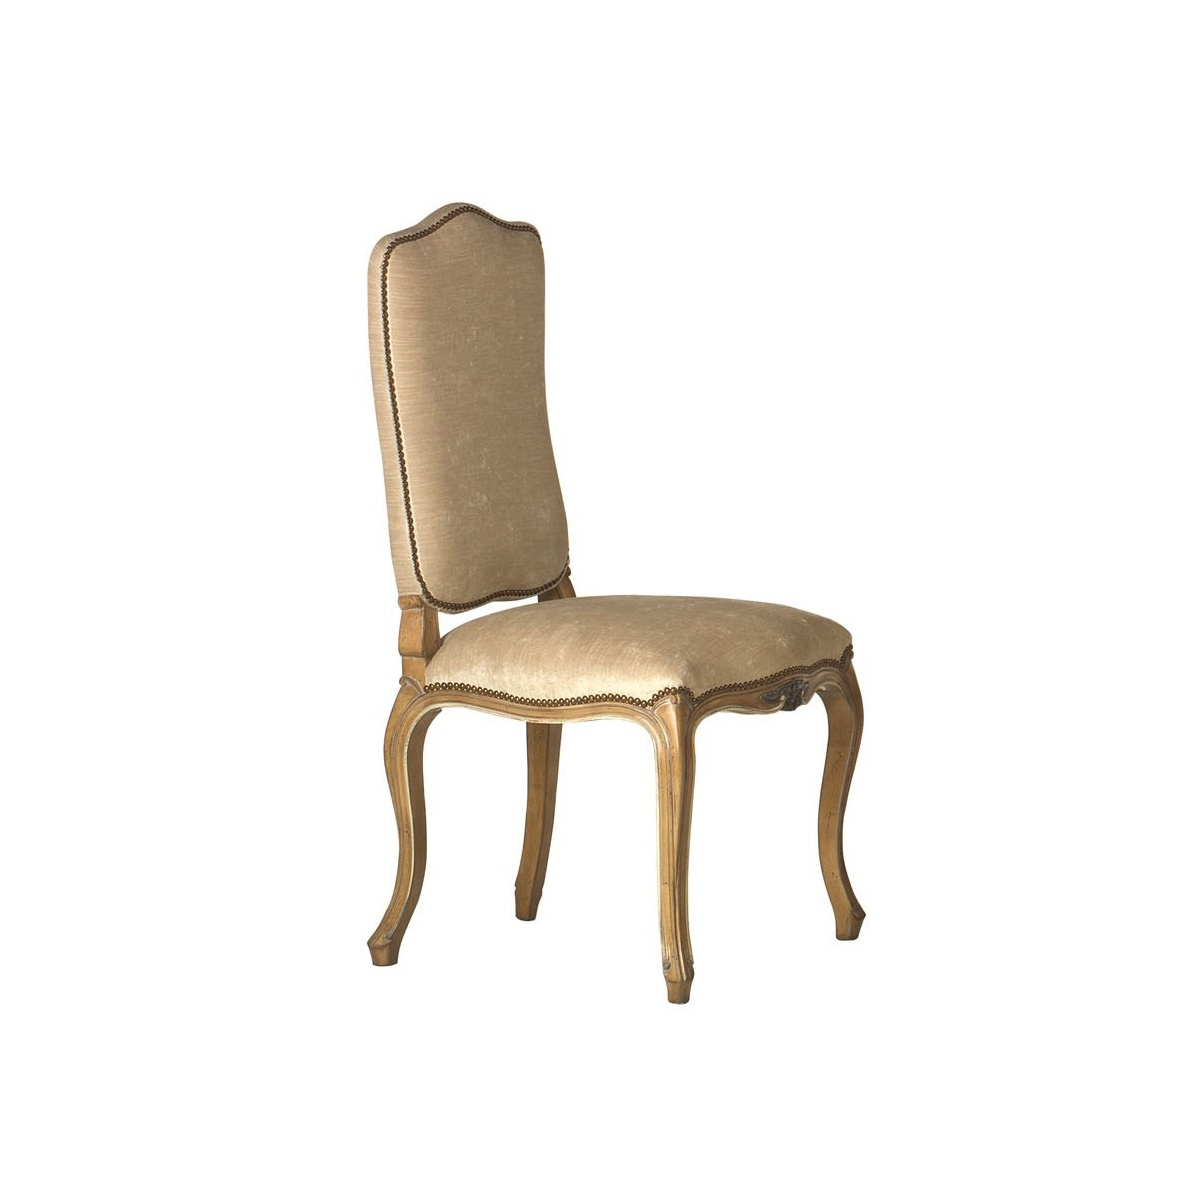 Luxury upholstered dining chair swanky interiors for Dining room upholstered chairs